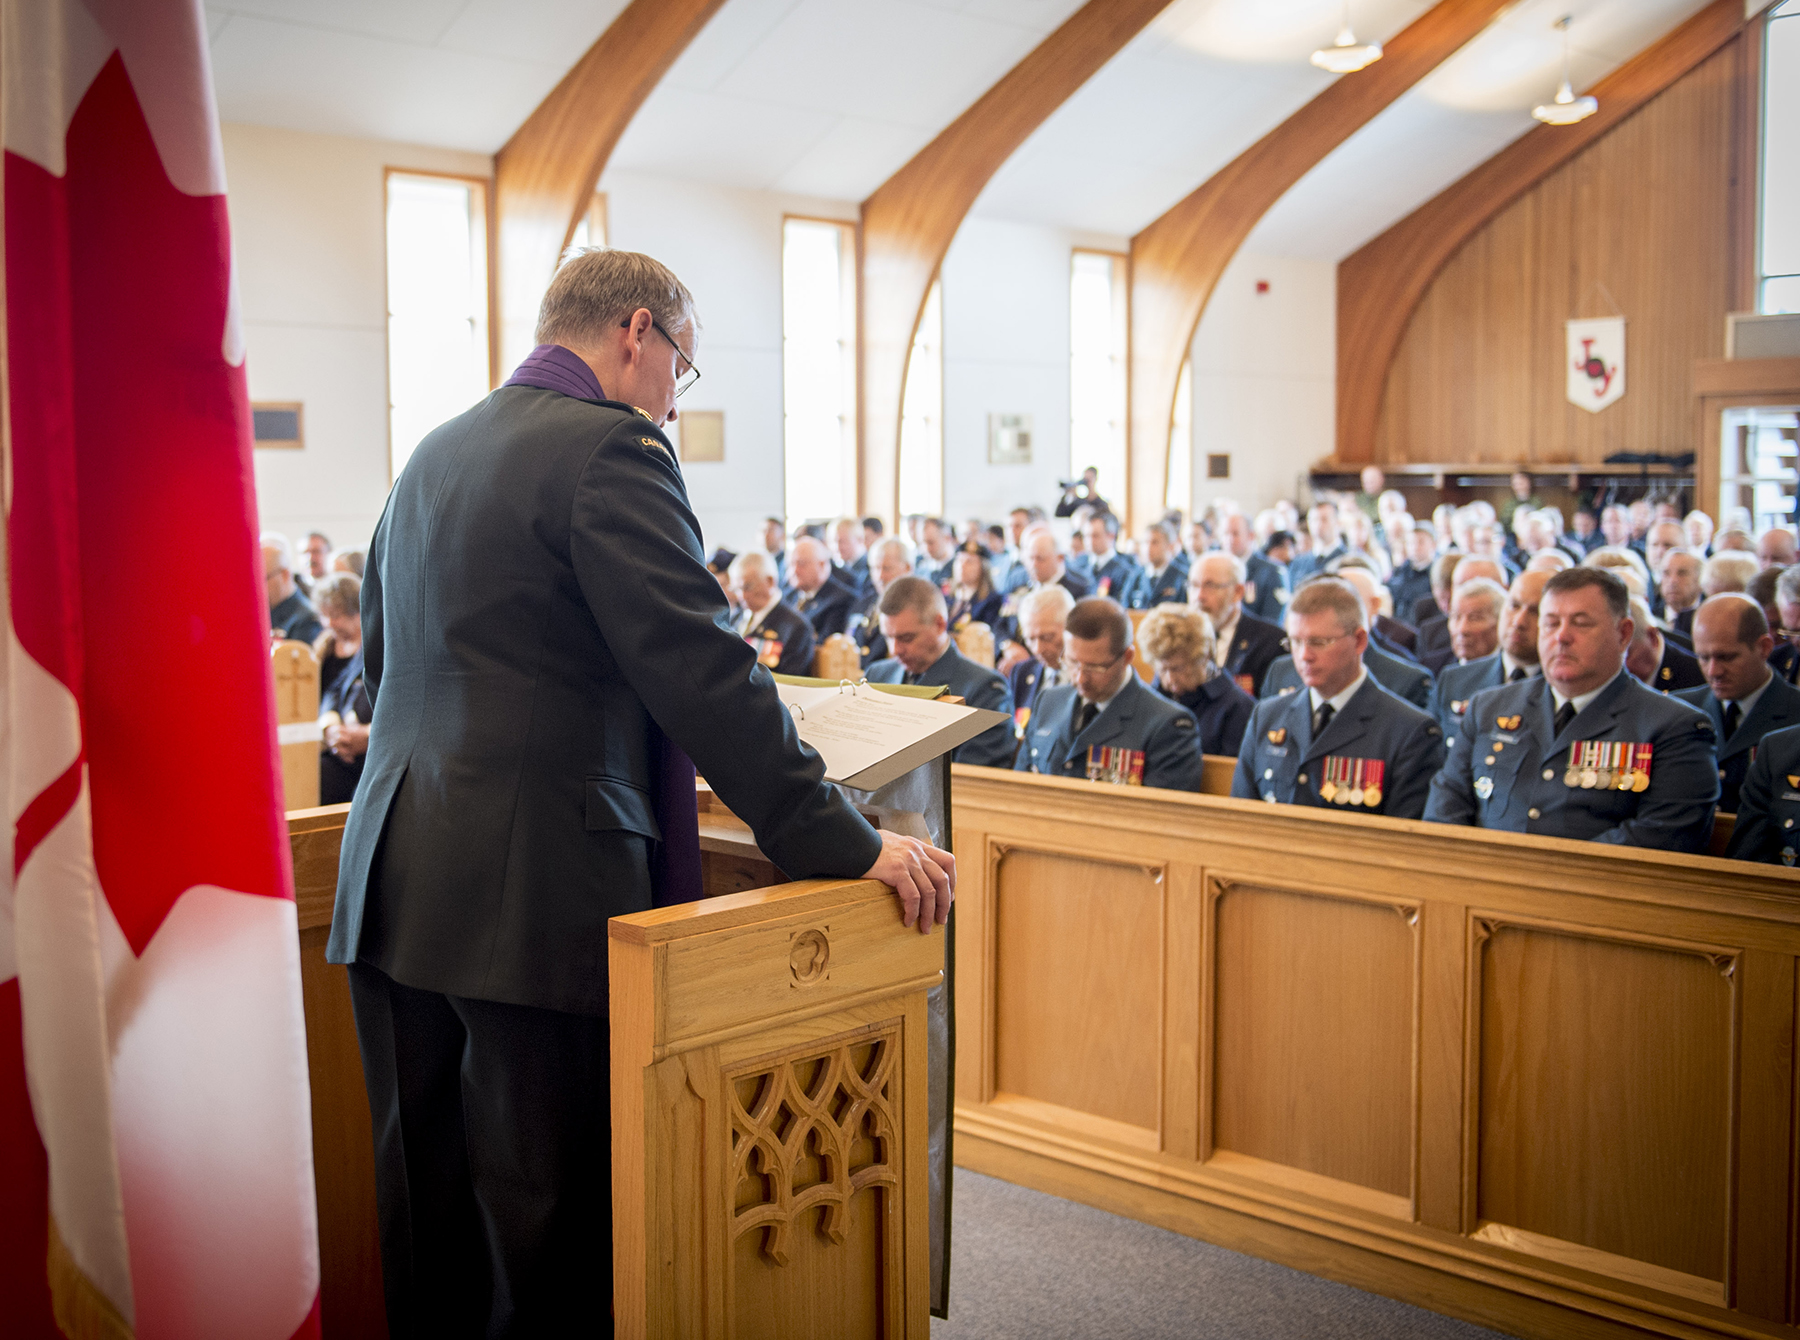 Major Bastien Leclerc offers a prayer during the 19 Wing Battle of Britain service held September 17, 2017, in St. Michael and All Angels Chapel in Comox, British Columbia. PHOTO: Master Seaman Roxanne Wood, CX04-2017-0355-007